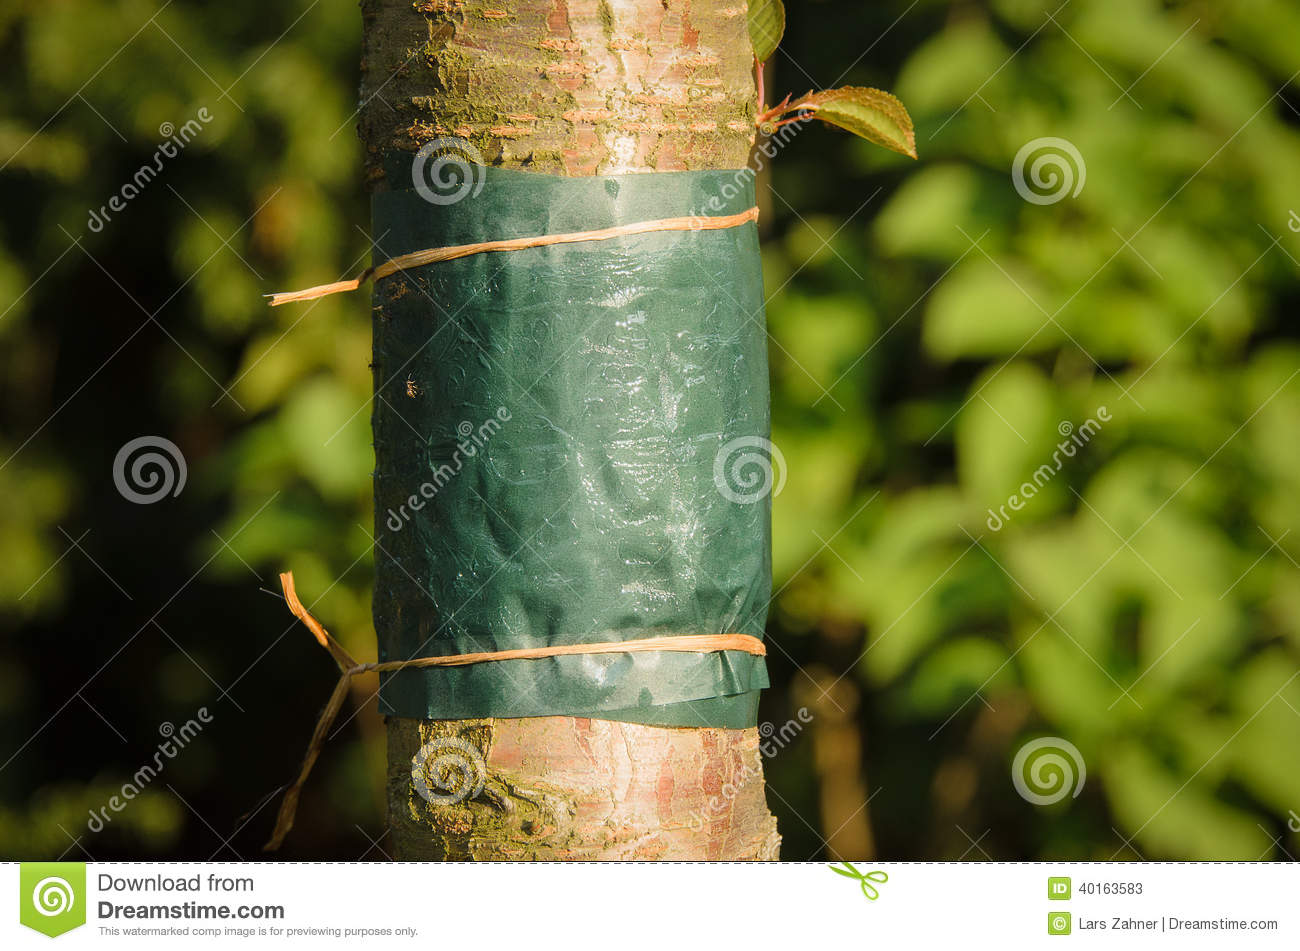 glue band tied around the trunk of a tree stock photo